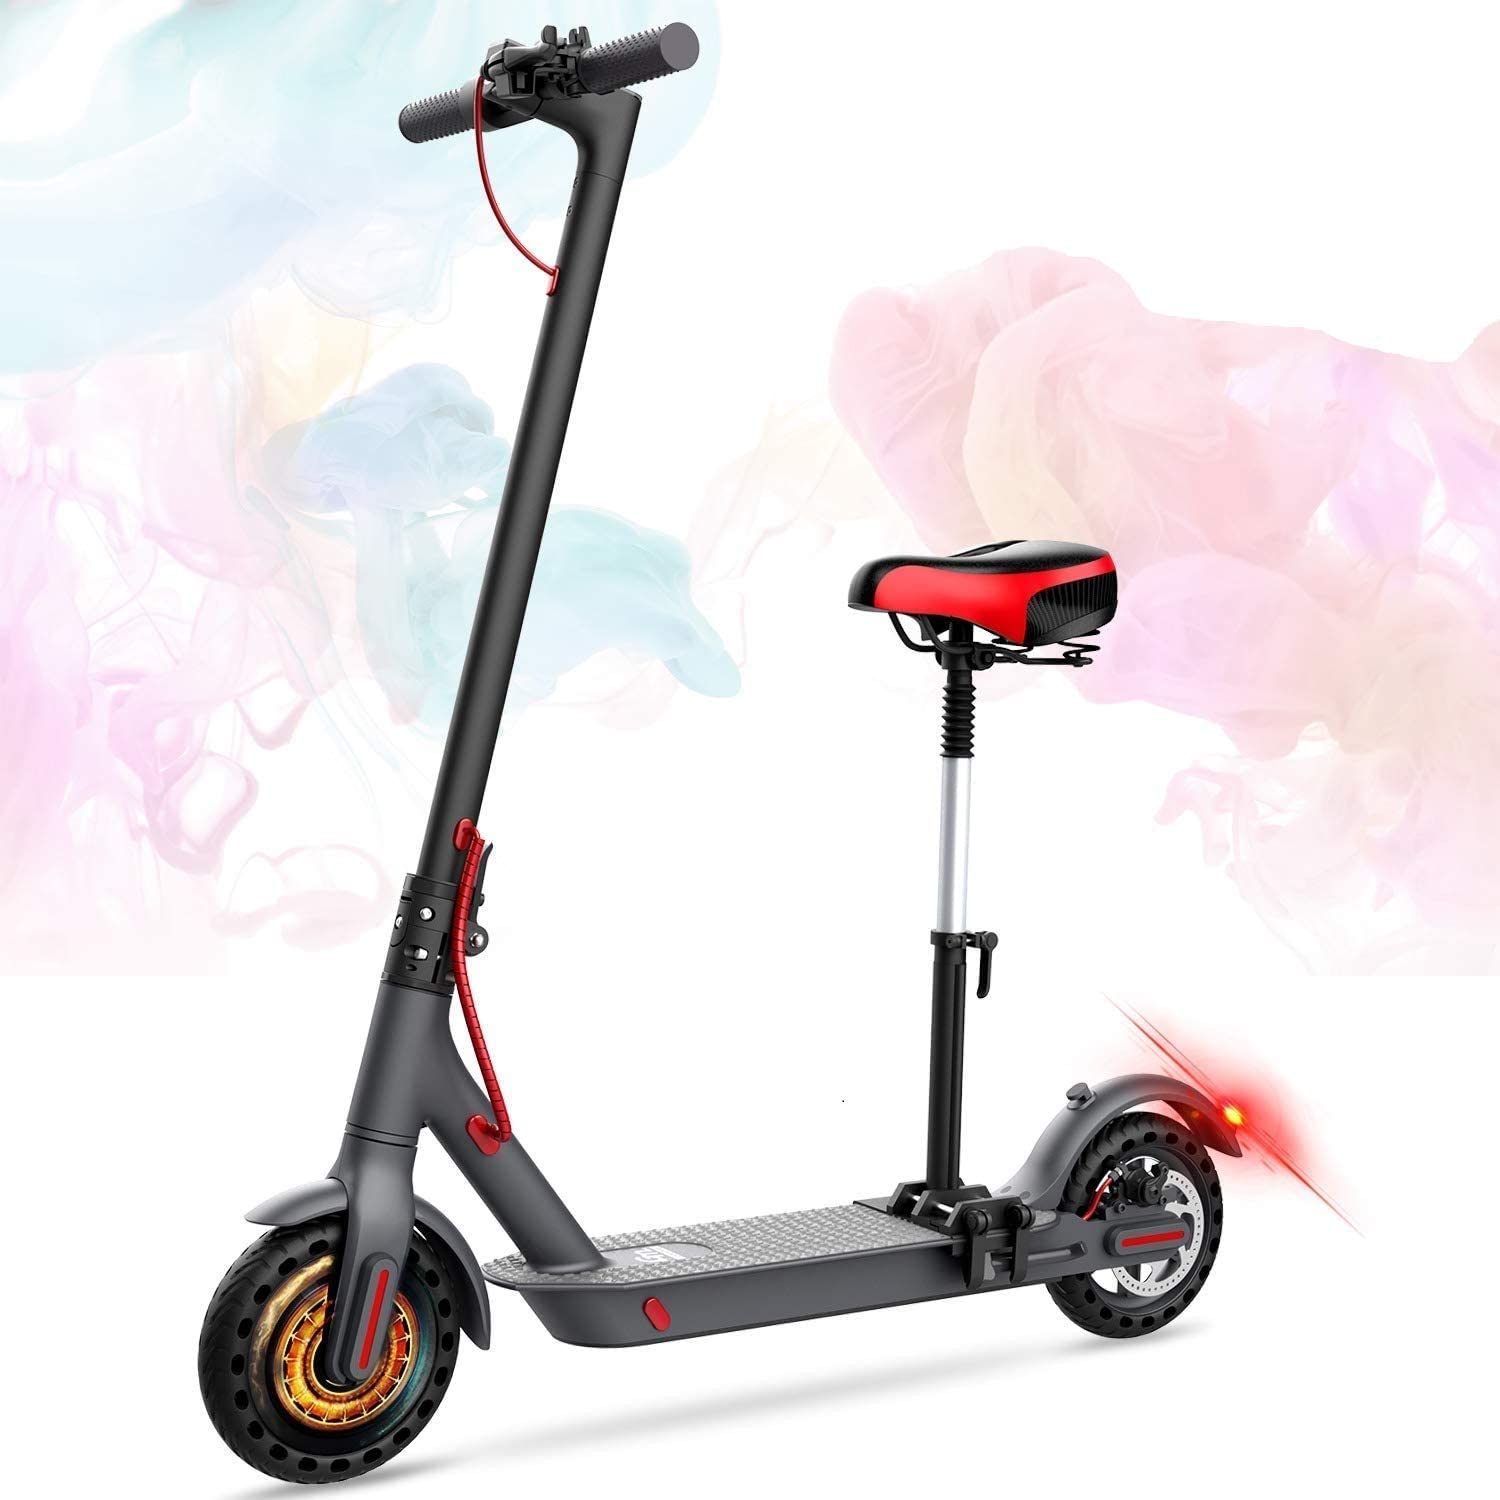 GeekMe Electric Scooter